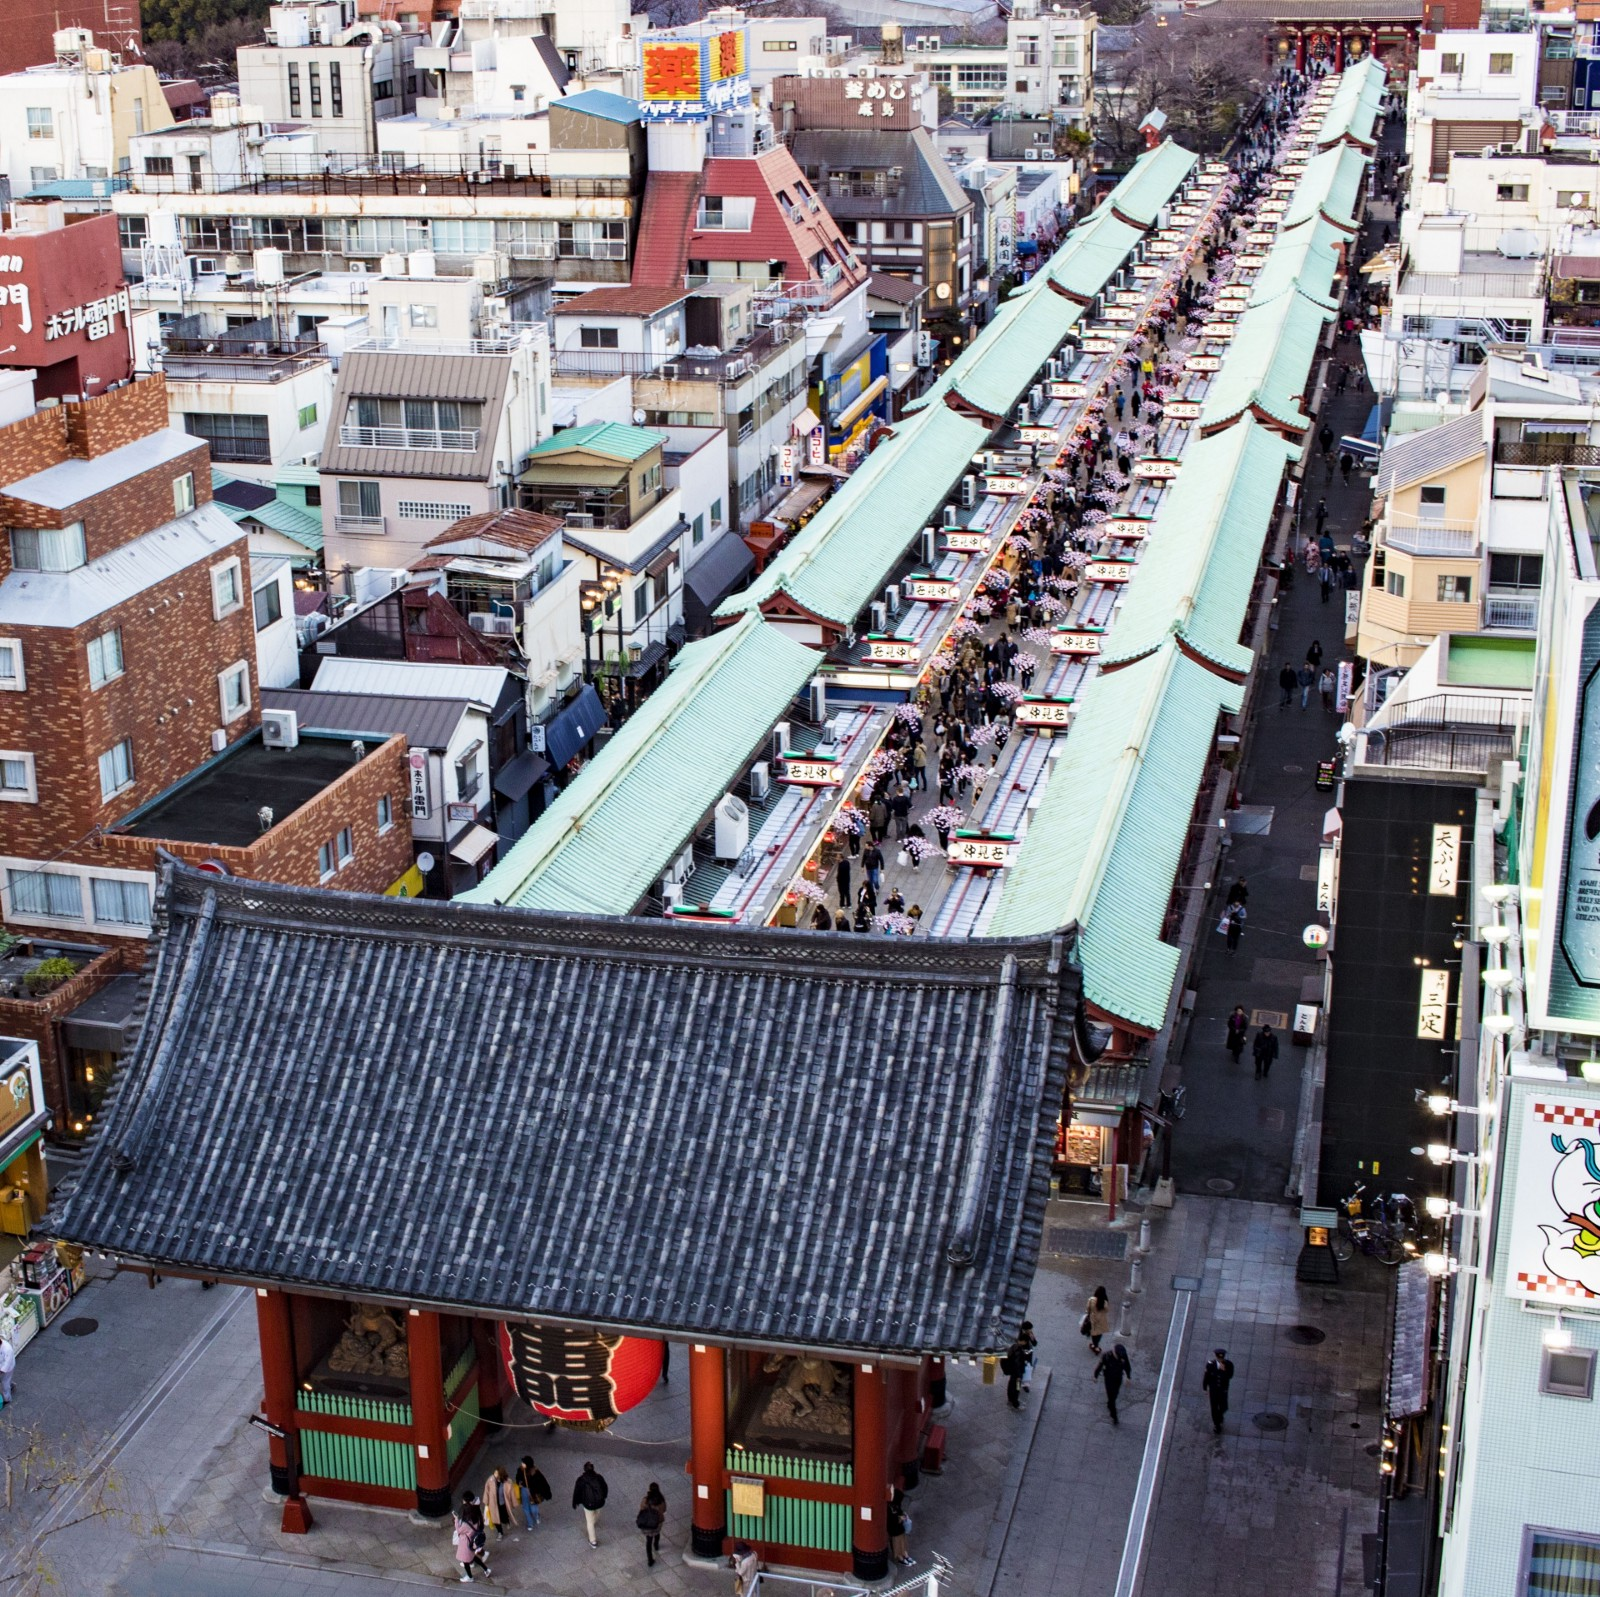 The view of Nakamise Shopping Street from above